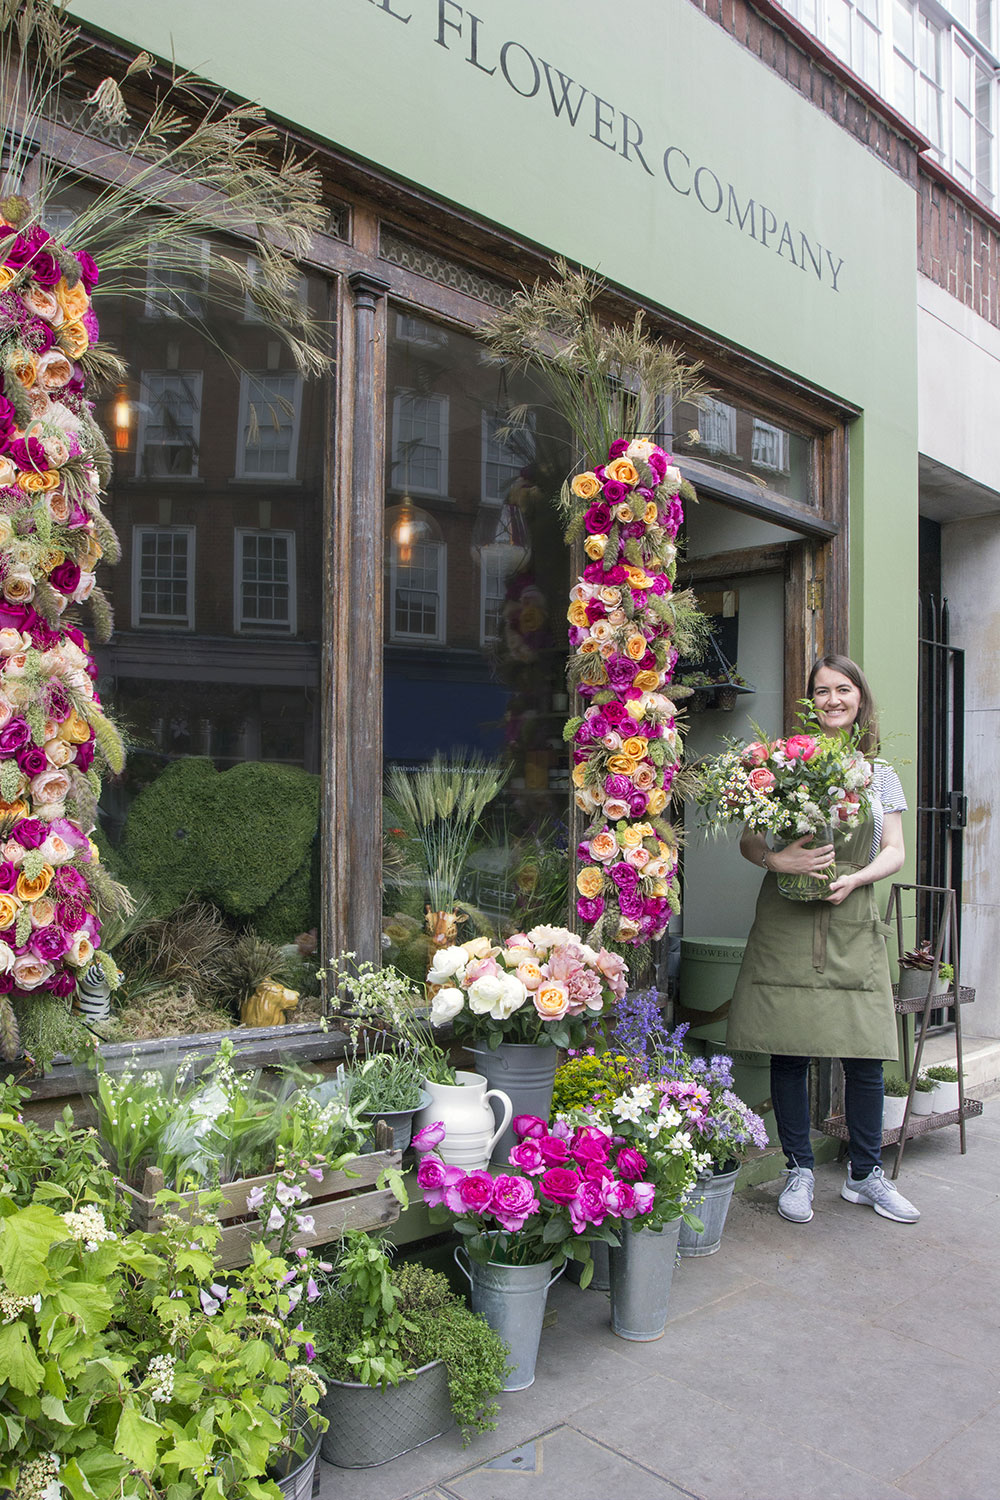 Chelsea green in bloom the real flower company blog you can find our london florist at 13 cale street sw3 3qs in chelsea green its a short walk from sloane square kings road south kensington and izmirmasajfo Images